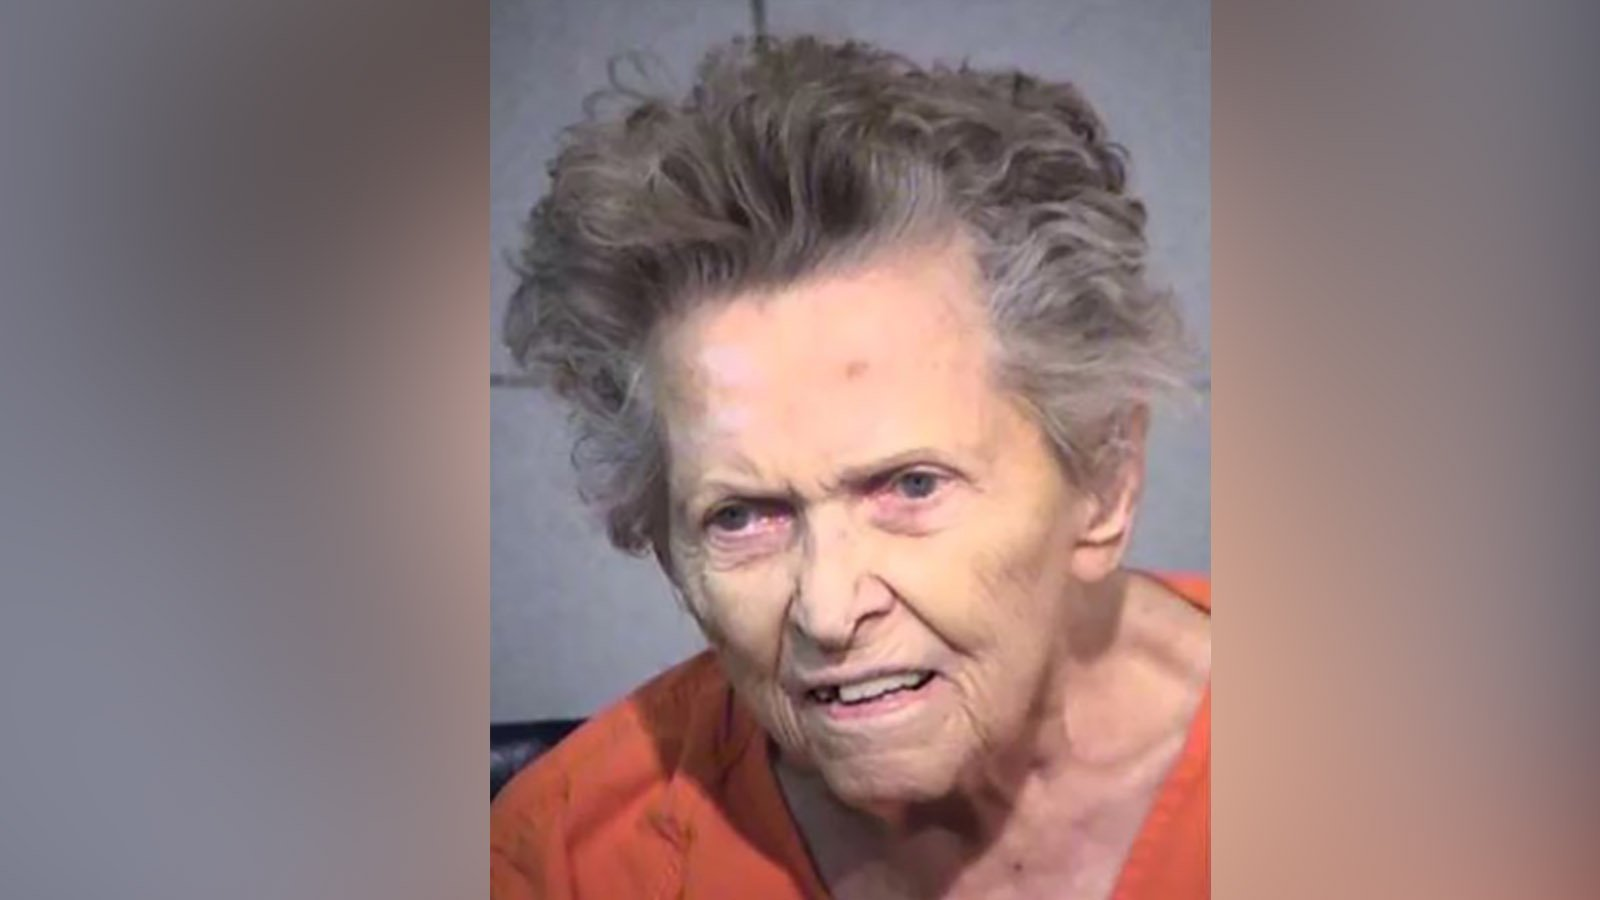 A 92-year-old woman allegedly killed her son in Arizona because she did not want to be sent to an assisted living facility, authorities said. (Credit: Maricopa Co. Sheriff's Office)